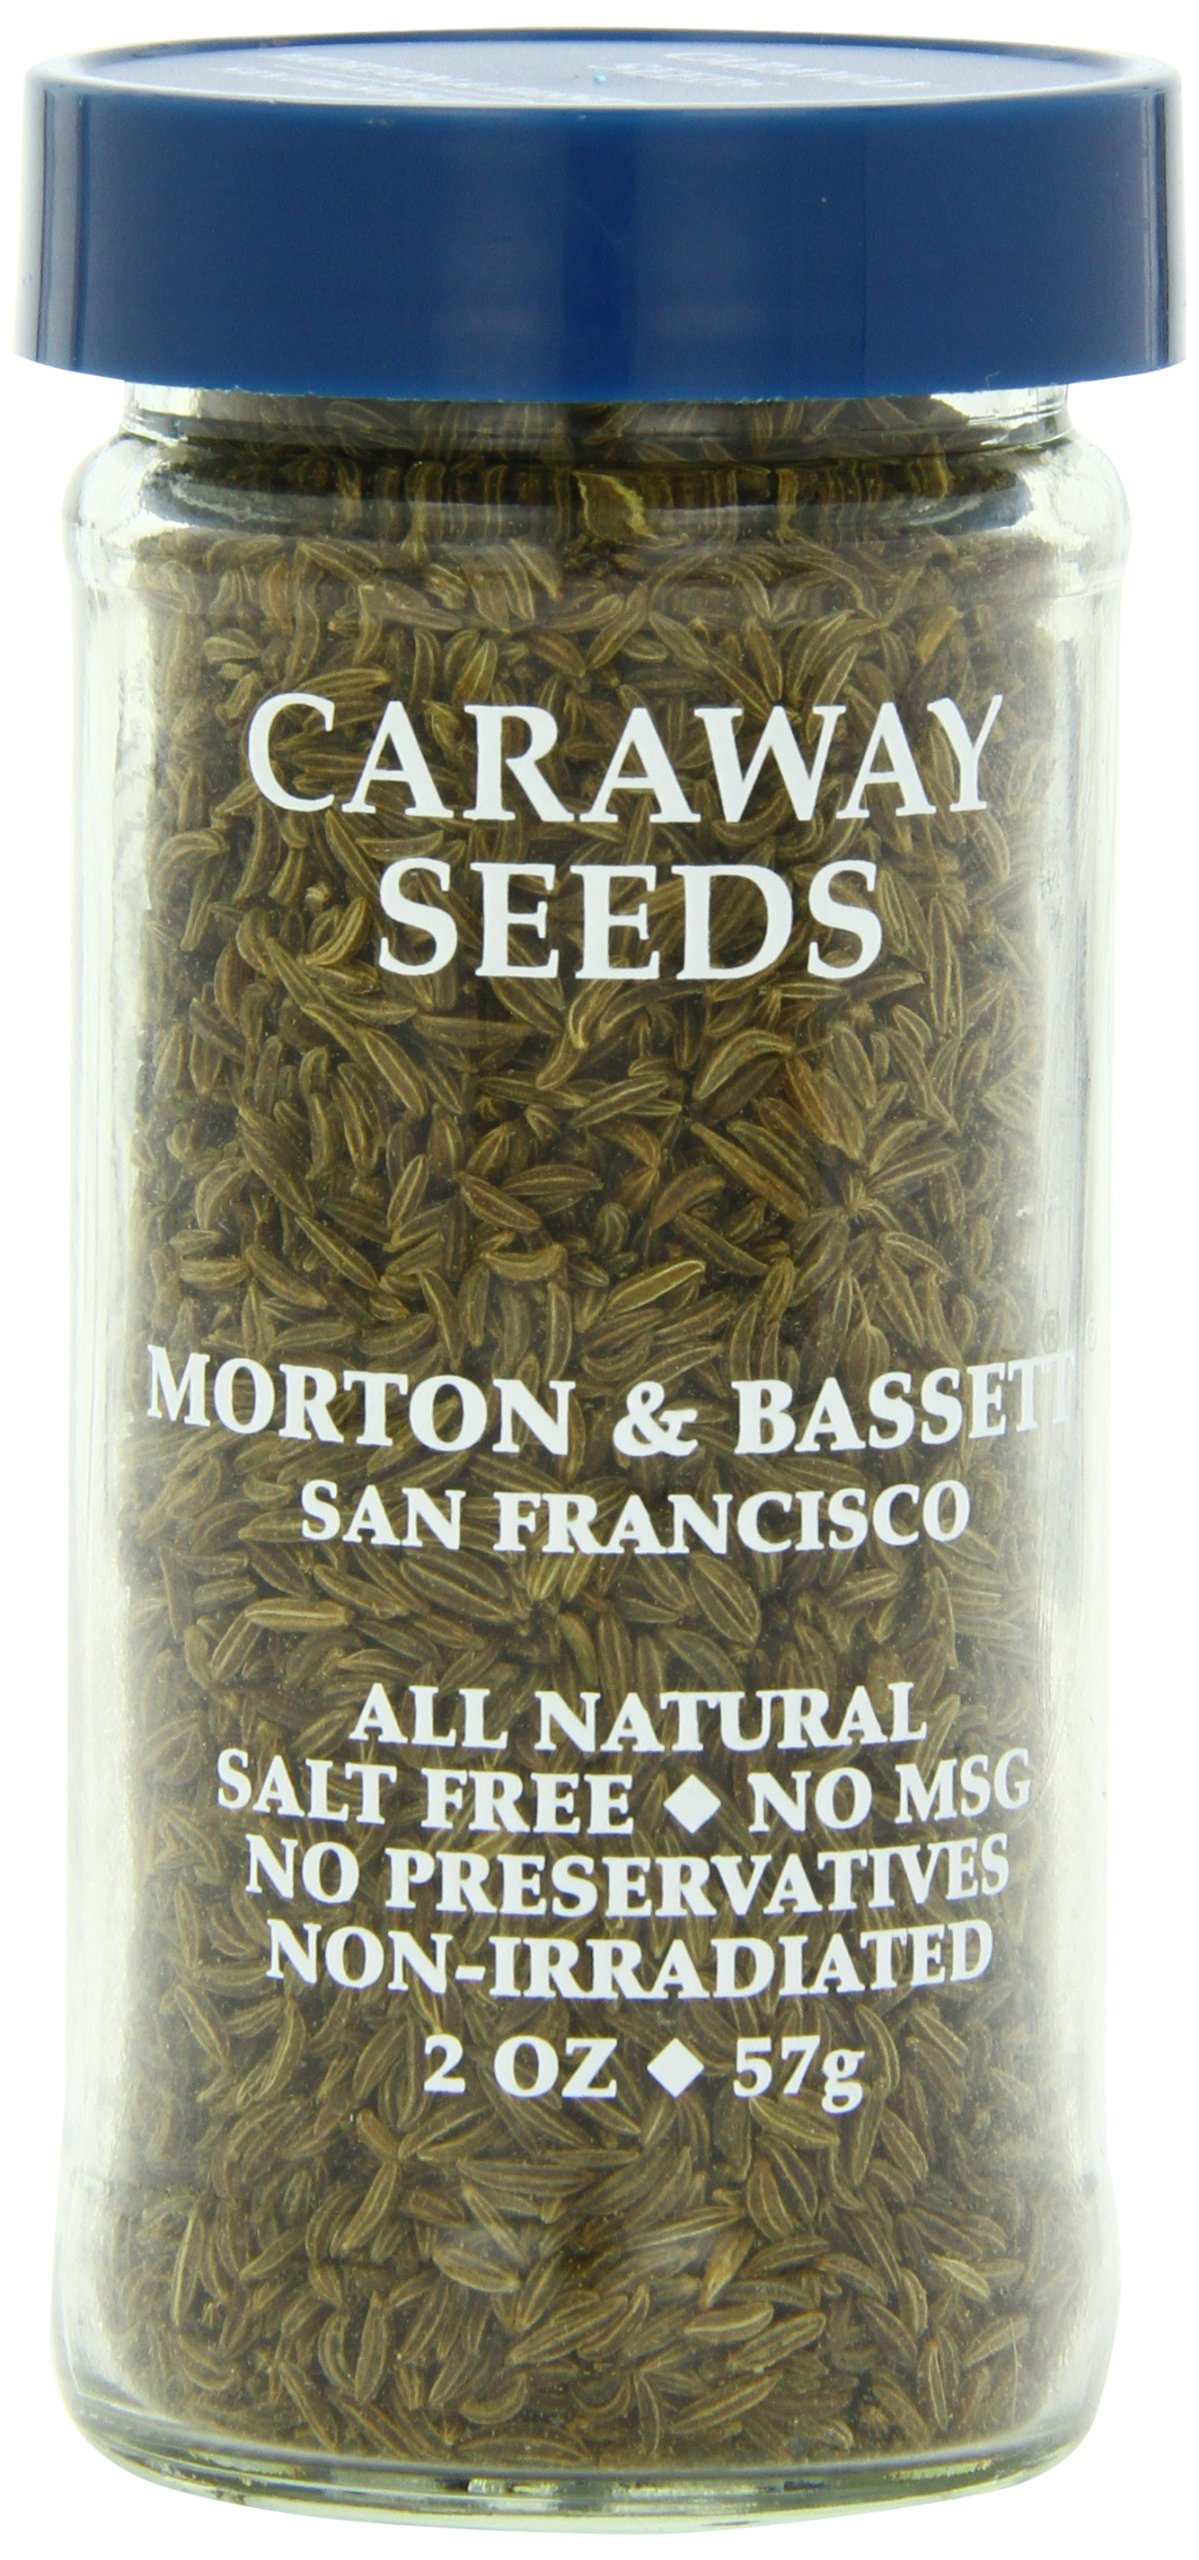 Morton & Bassett Caraway Seeds, 2-Ounce Jars (Pack of 3)